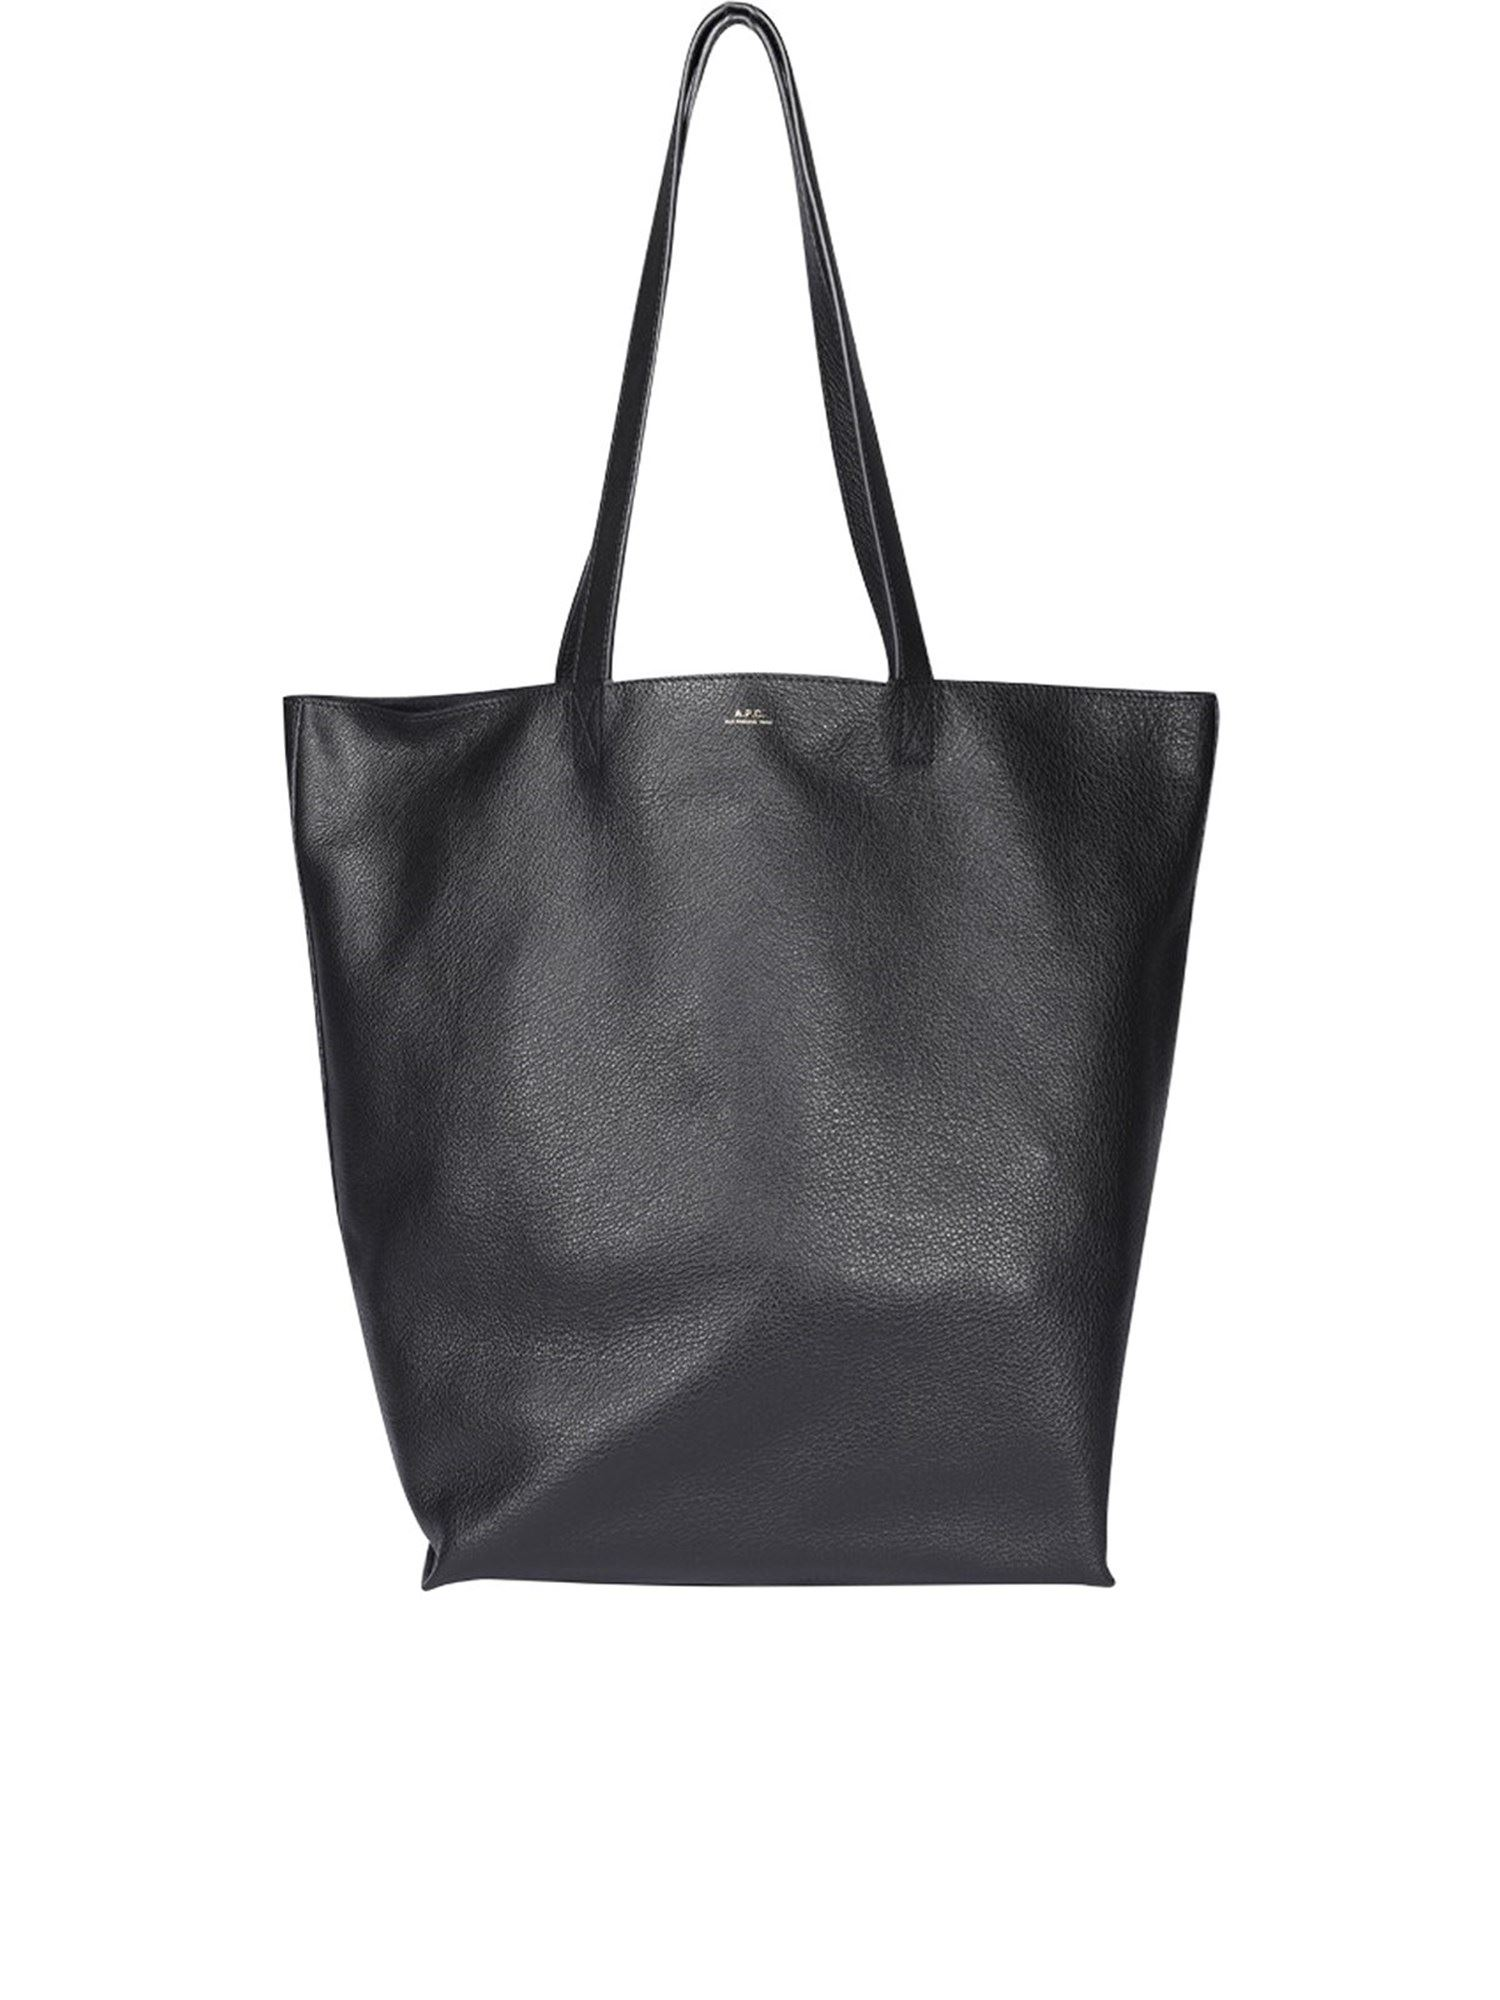 A.p.c. Leathers MAIKO TOTE IN BLACK